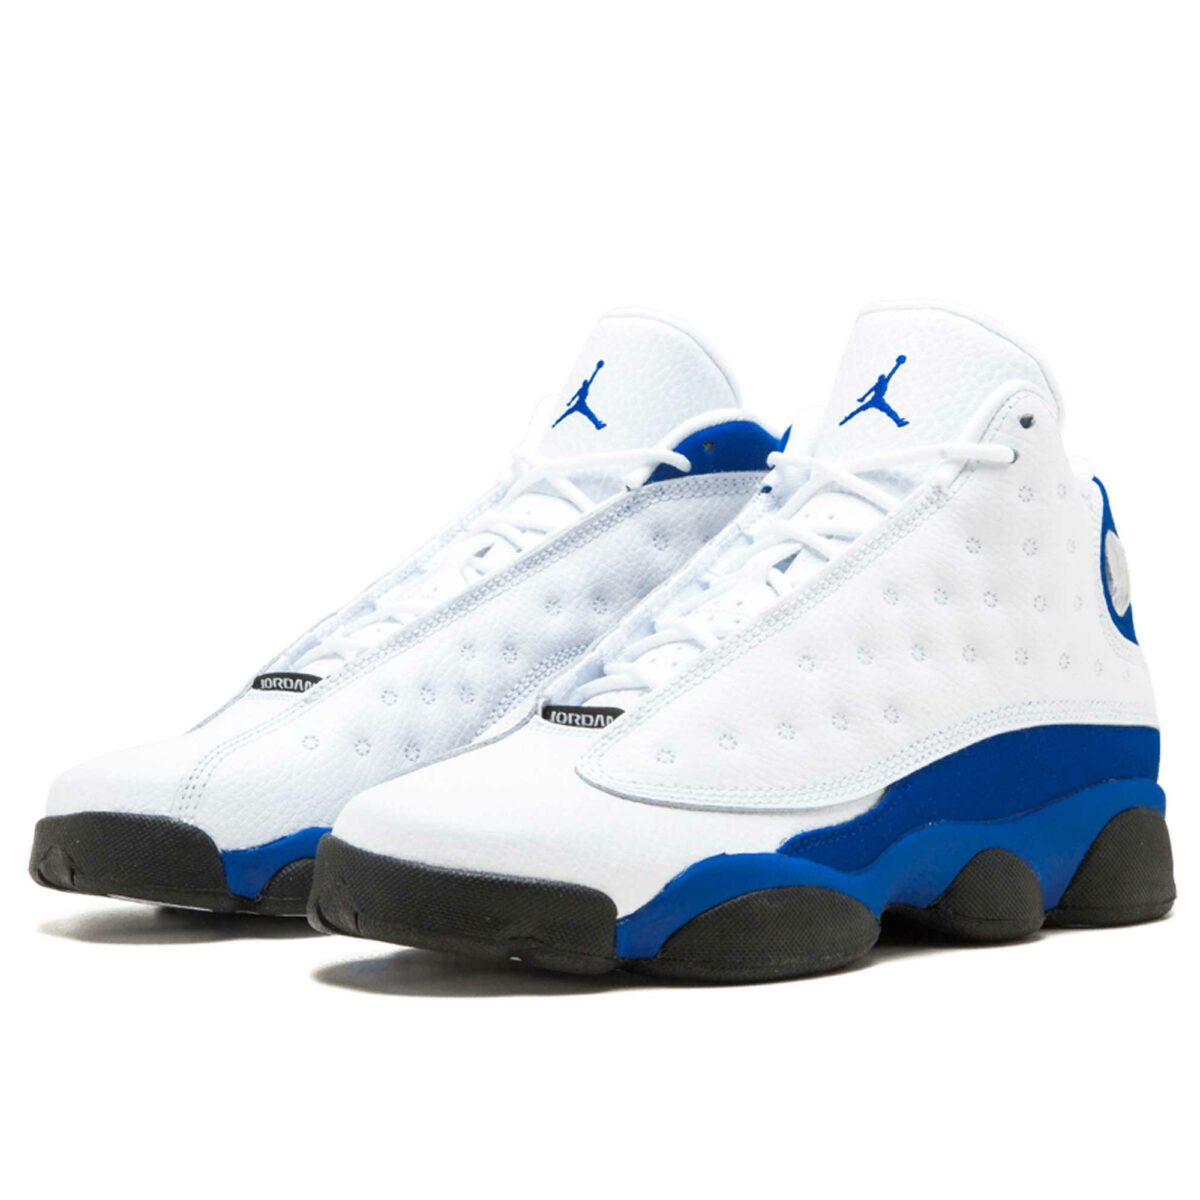 nike air Jordan 13 retro BG hyper royal 884129_117 купить